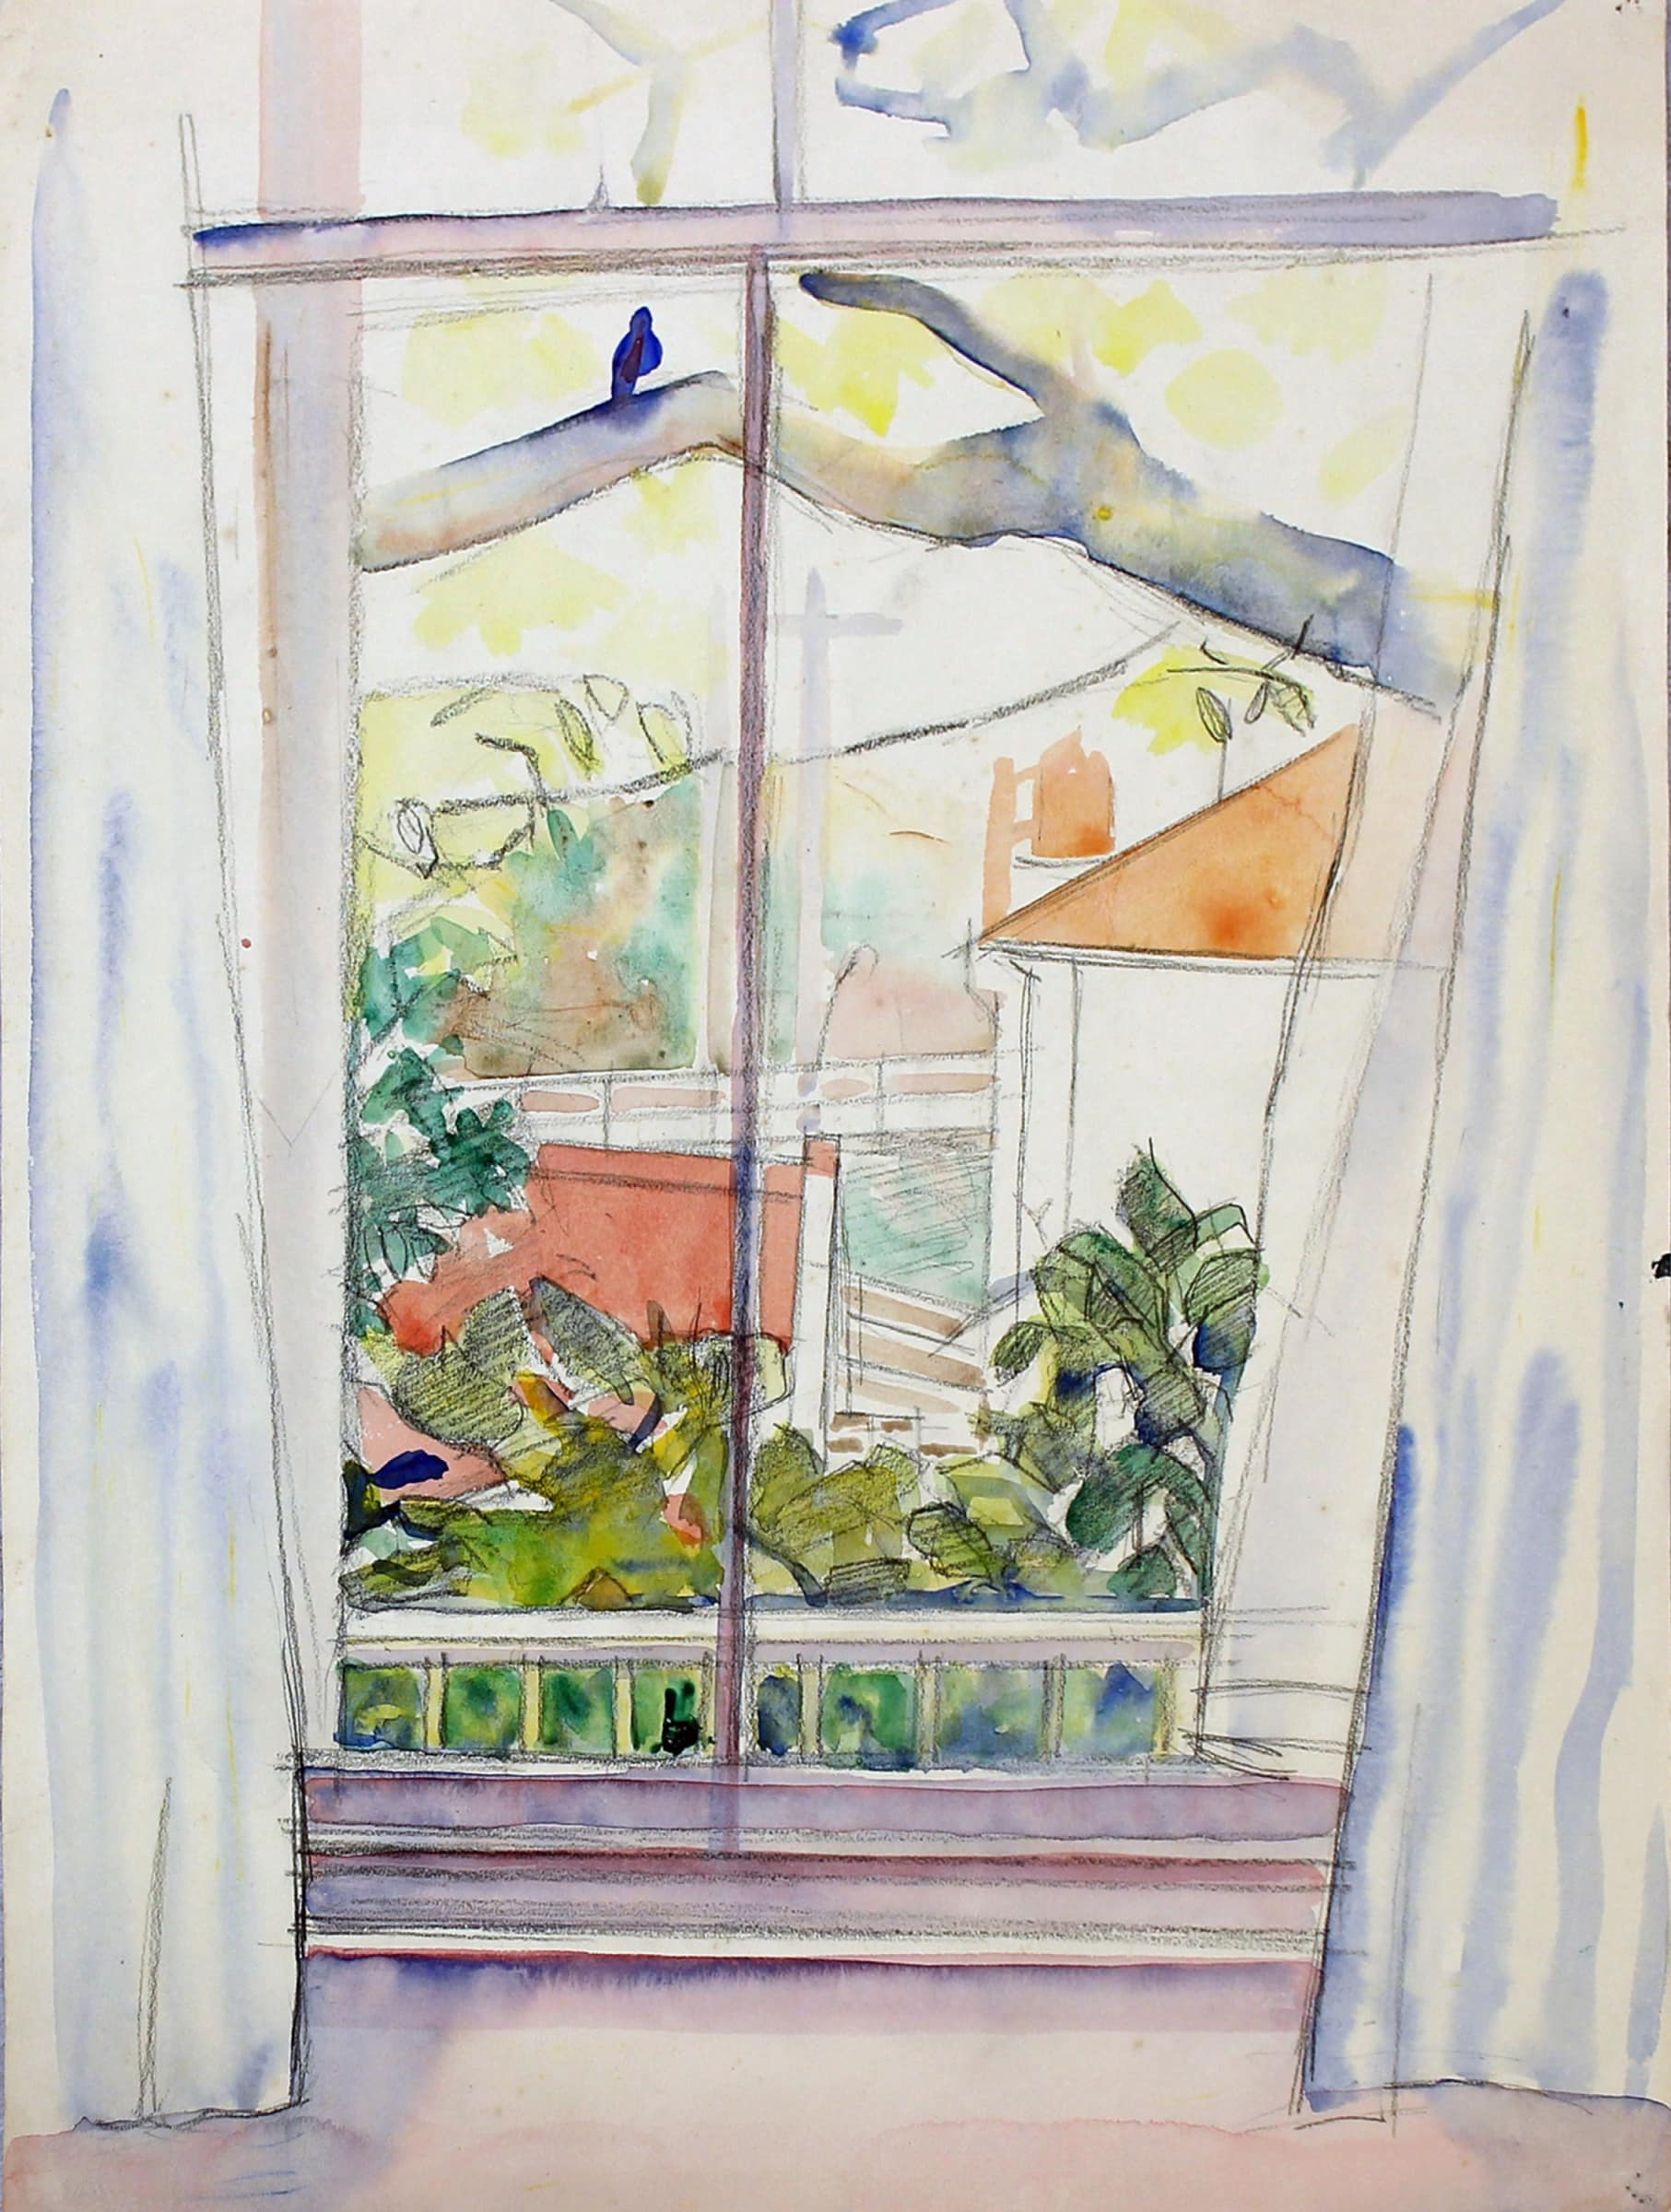 <span class=&#34;link fancybox-details-link&#34;><a href=&#34;/exhibitions/36/works/artworks6391/&#34;>View Detail Page</a></span><div class=&#34;medium&#34;>Watercolour and pencil on paper</div> <div class=&#34;dimensions&#34;>15 x 11 in<br />38.1 x 28 cm</div>